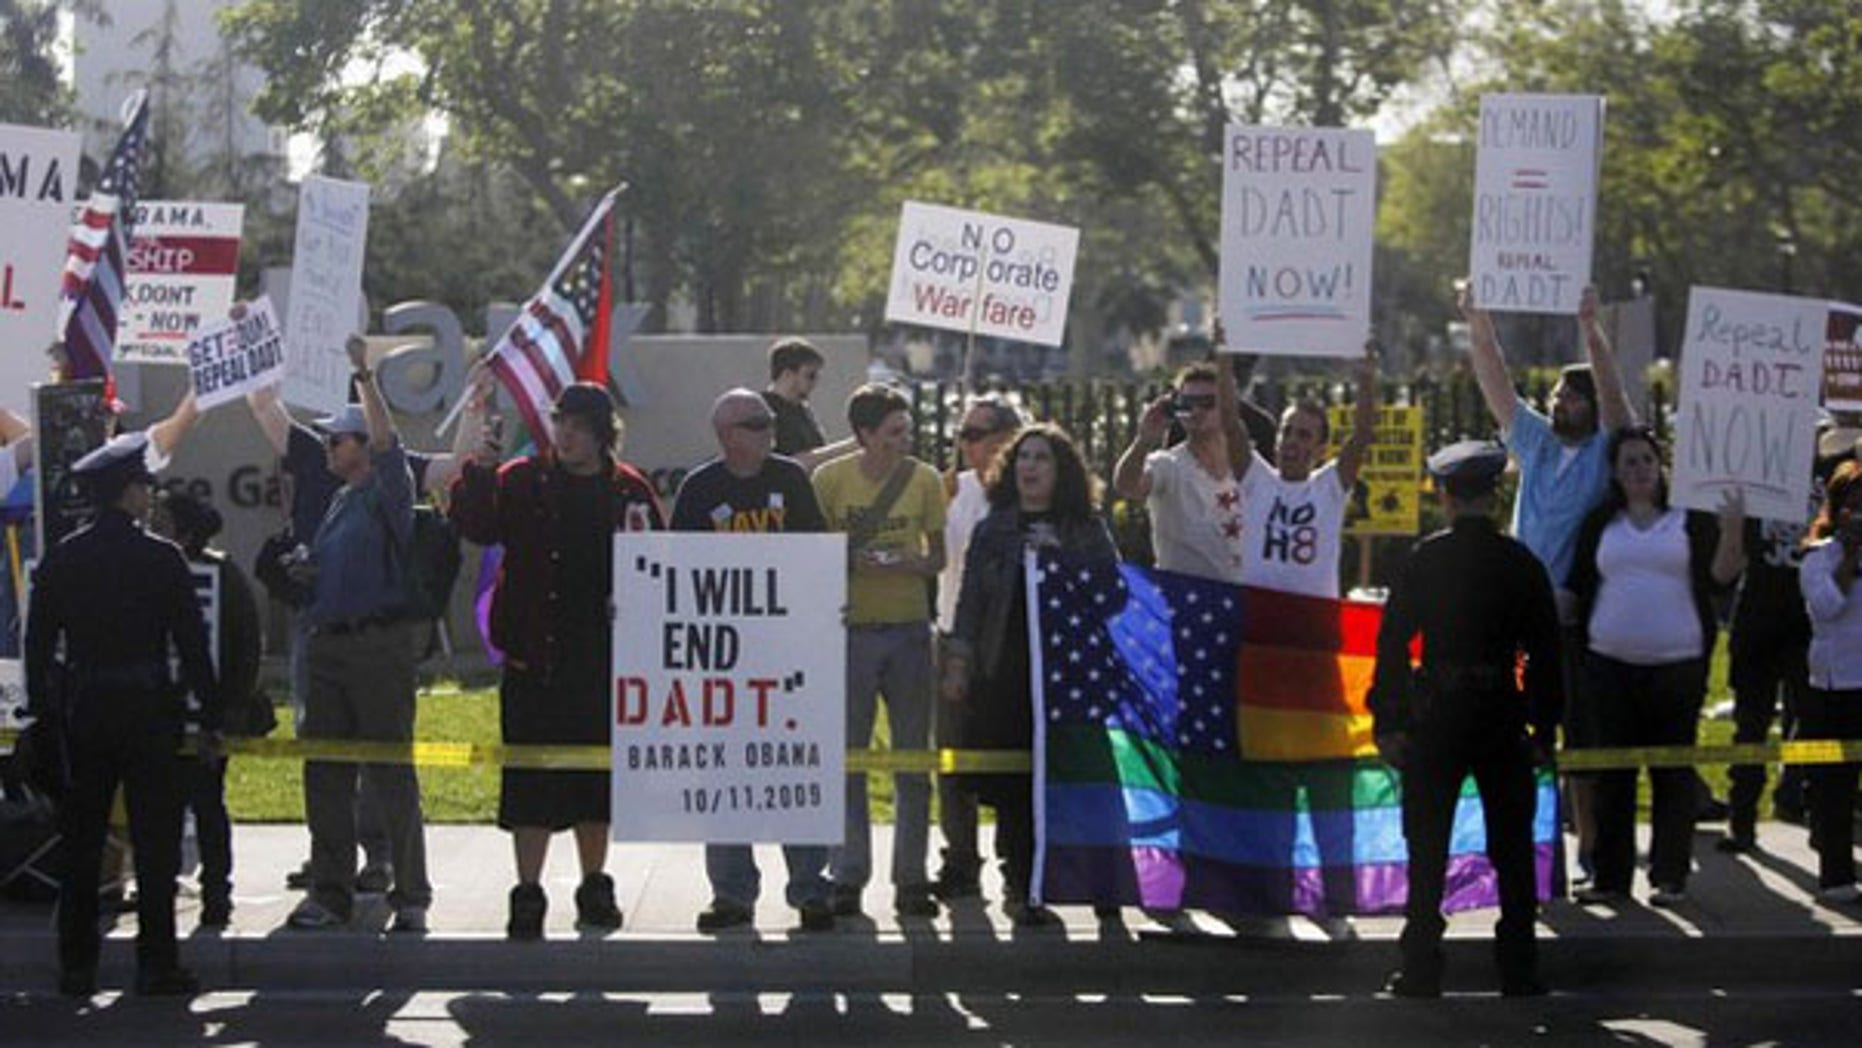 Protesters in favor of repealing the 'Don't Ask, Don't Tell' policy line the motorcade route of President Obama as he passes by in Los Angeles April 19. (Reuters Photo)